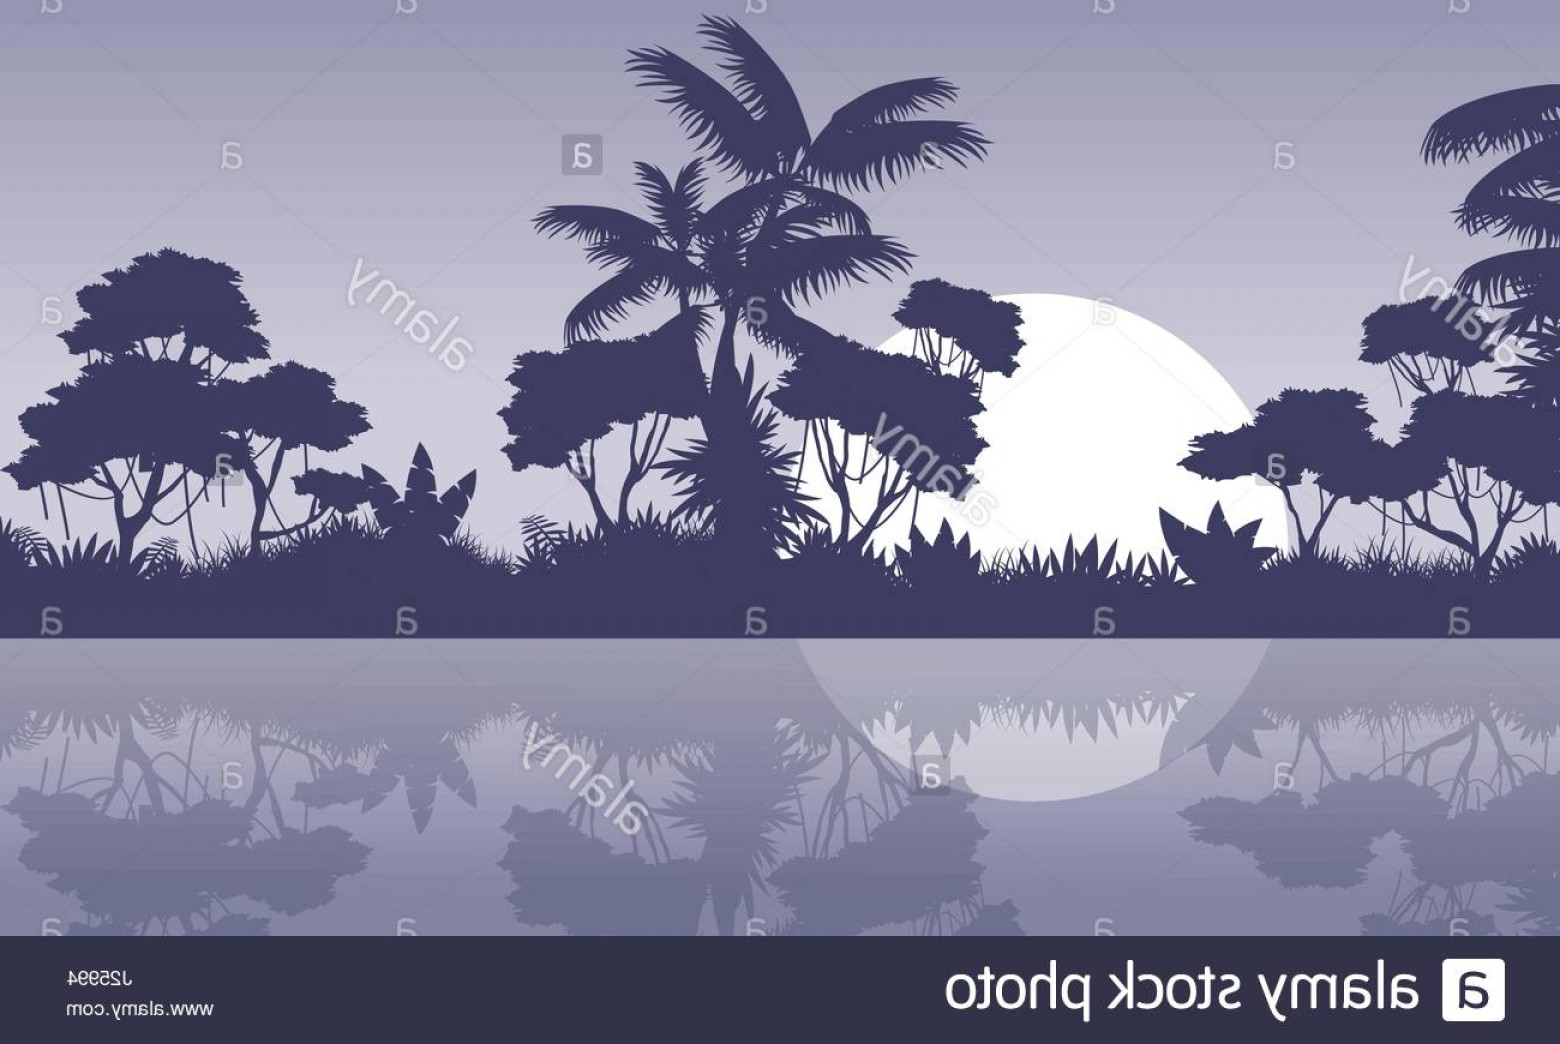 River Silhouette Vector Art: Stock Photo Jungle Scenery With River Silhouette Style